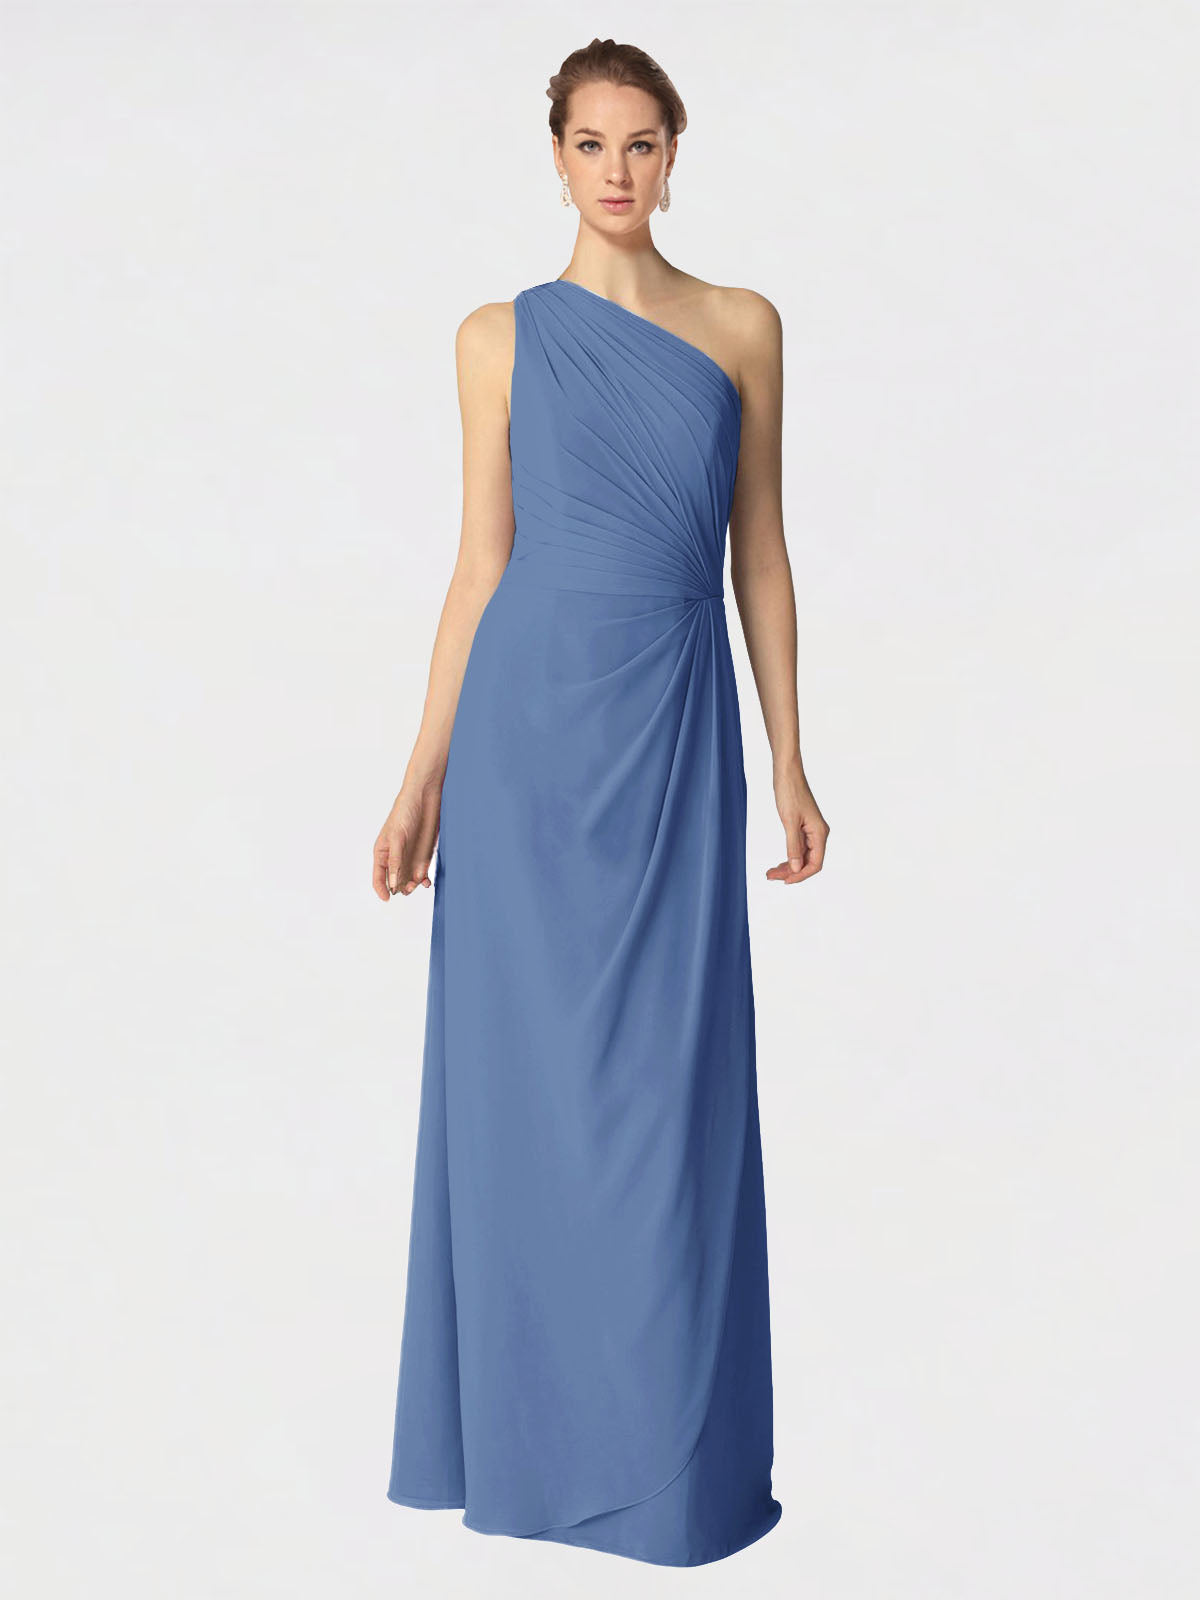 Long A-Line One Shoulder Sleeveless Windsor Blue Chiffon Bridesmaid Dress Aurora